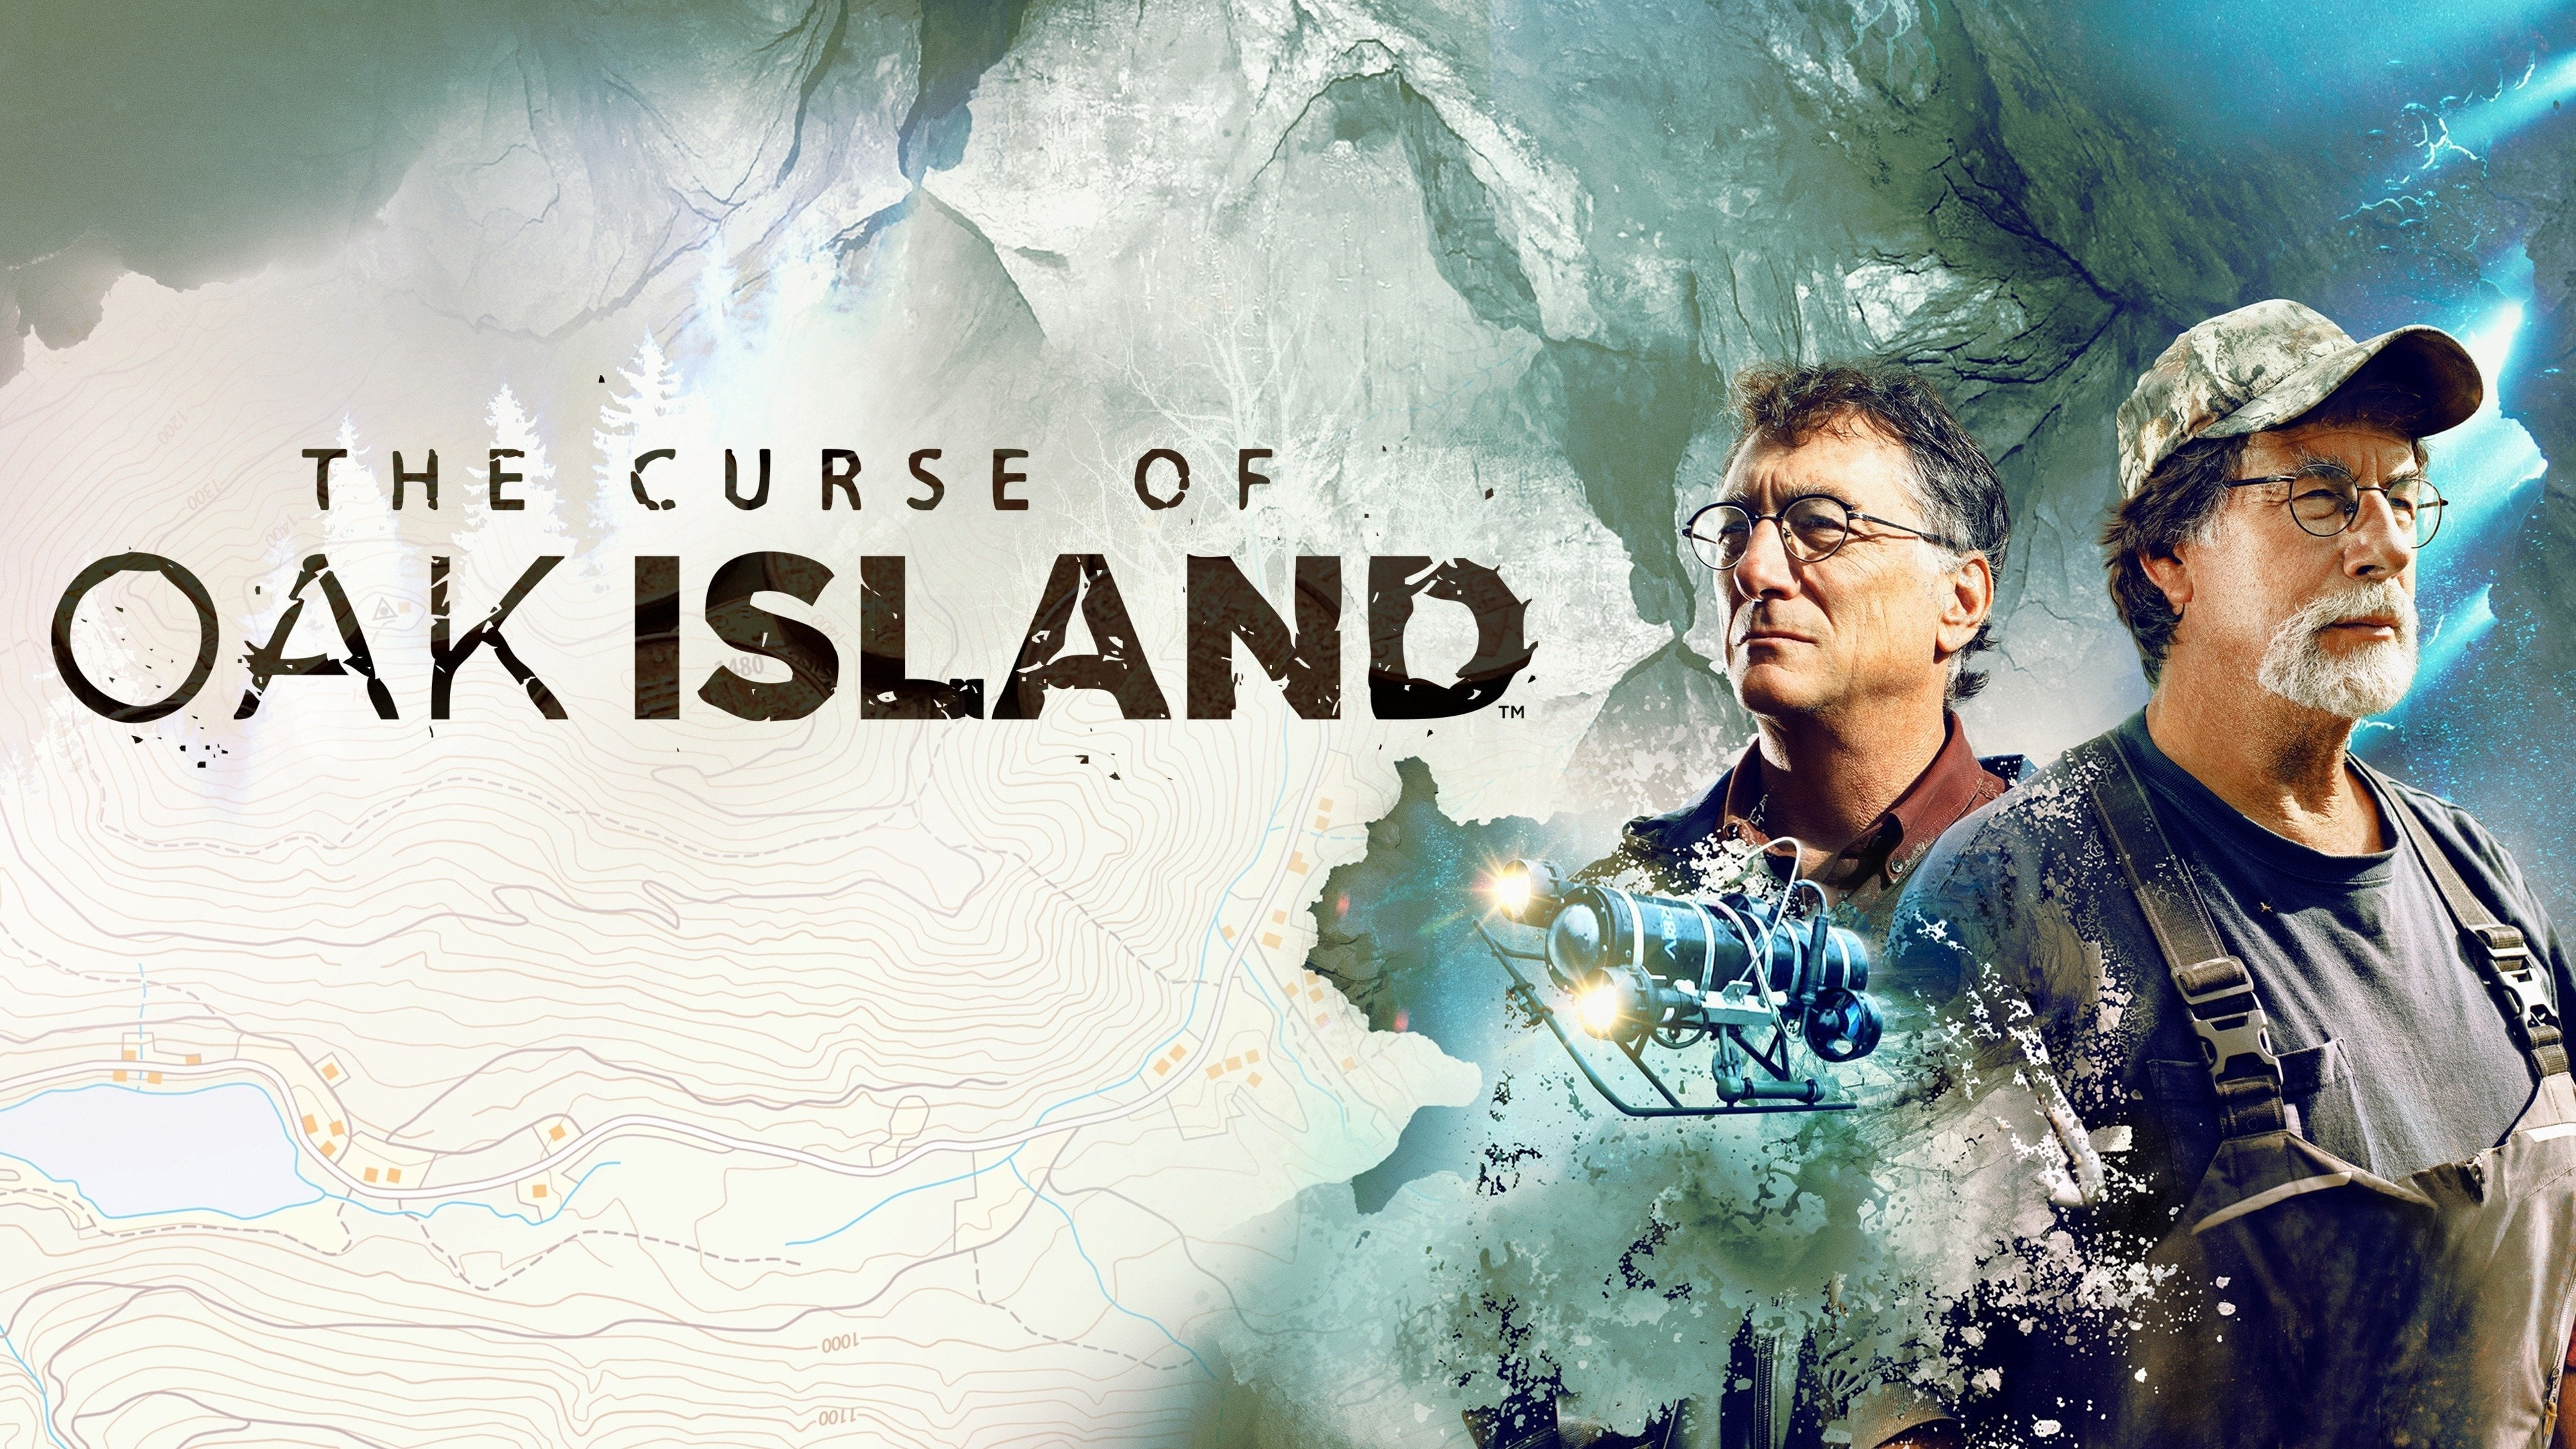 The Curse of Oak Island - Season 7